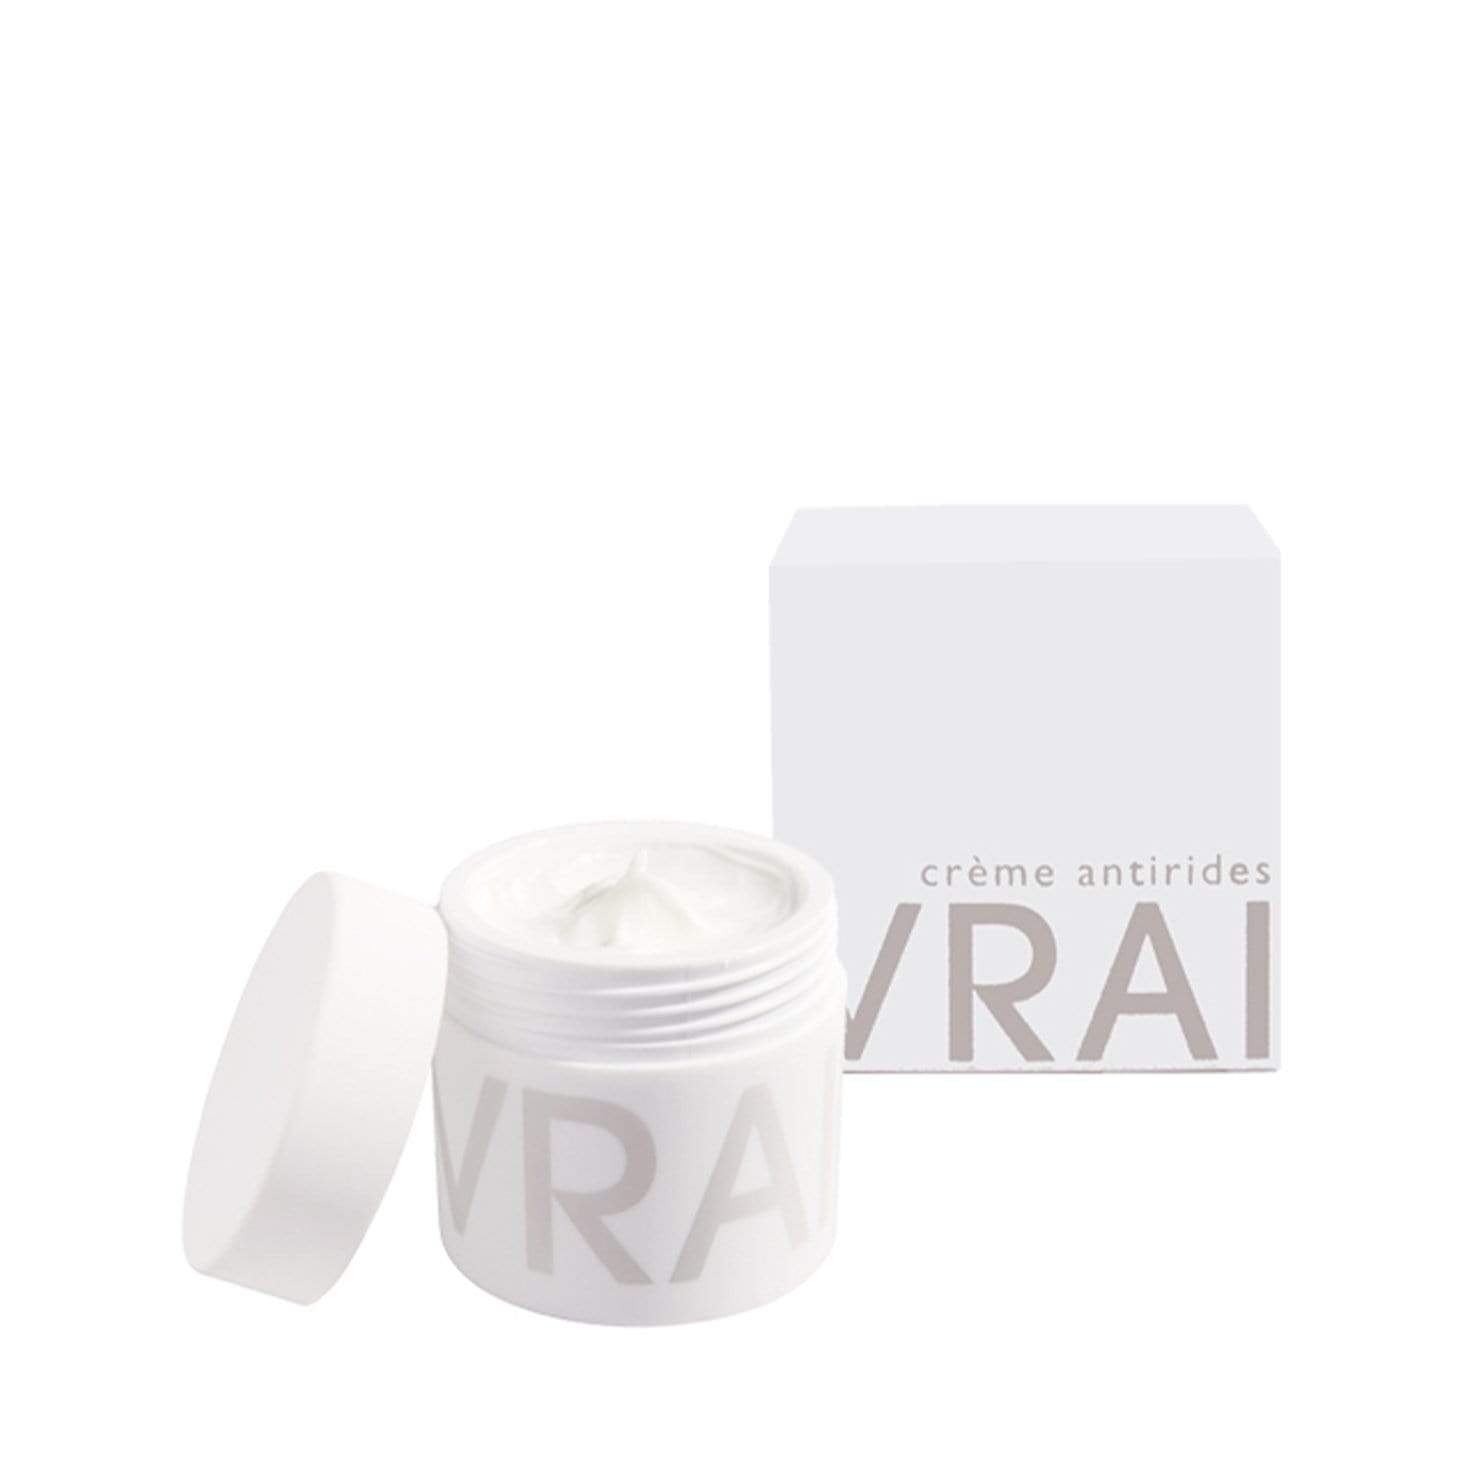 Fragonard VRAI Anti-Wrinkle Face Cream